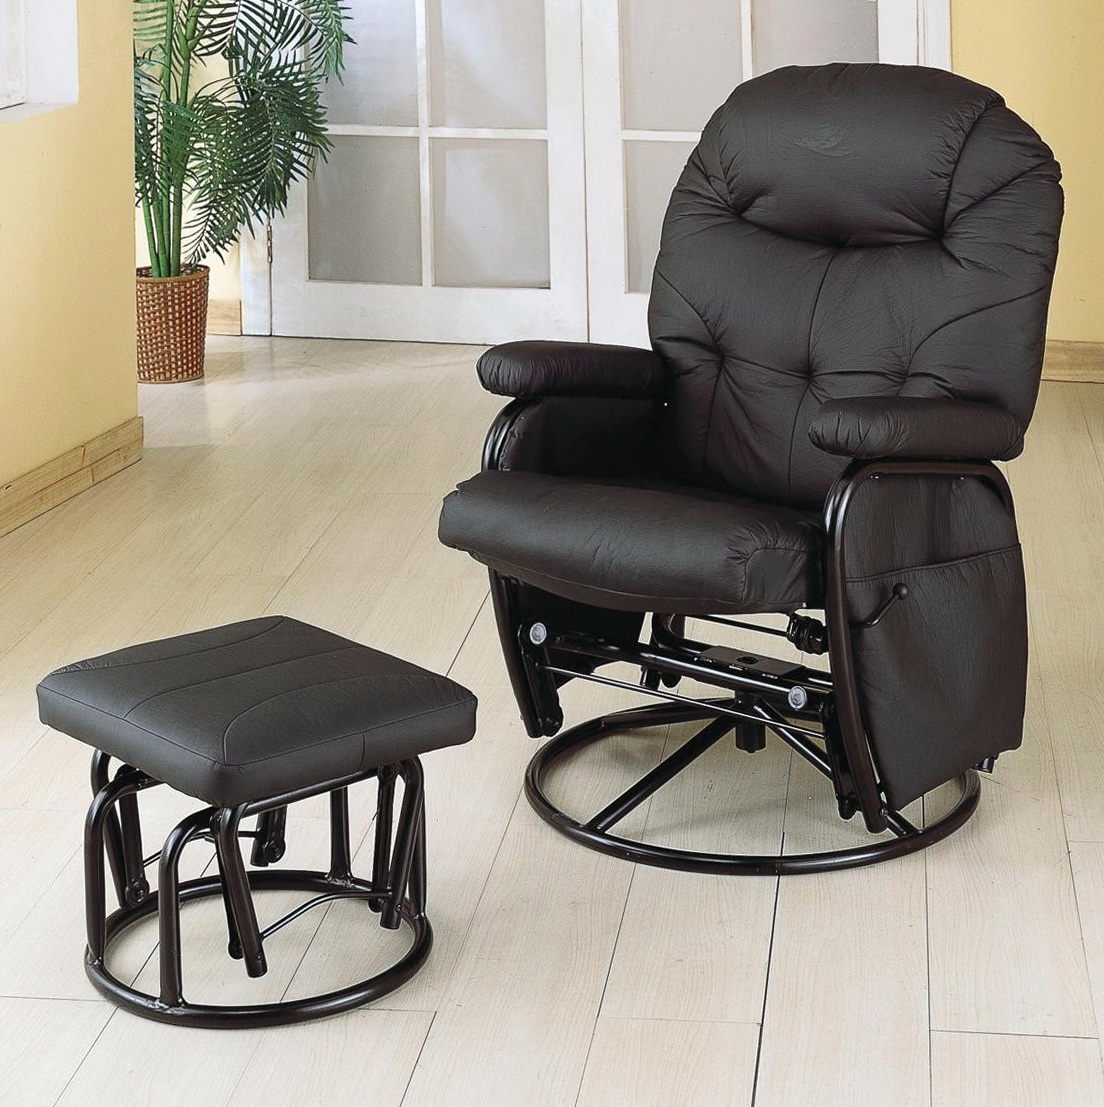 walmart rocking chair glider table covers ebay replacement cushions home design ideas